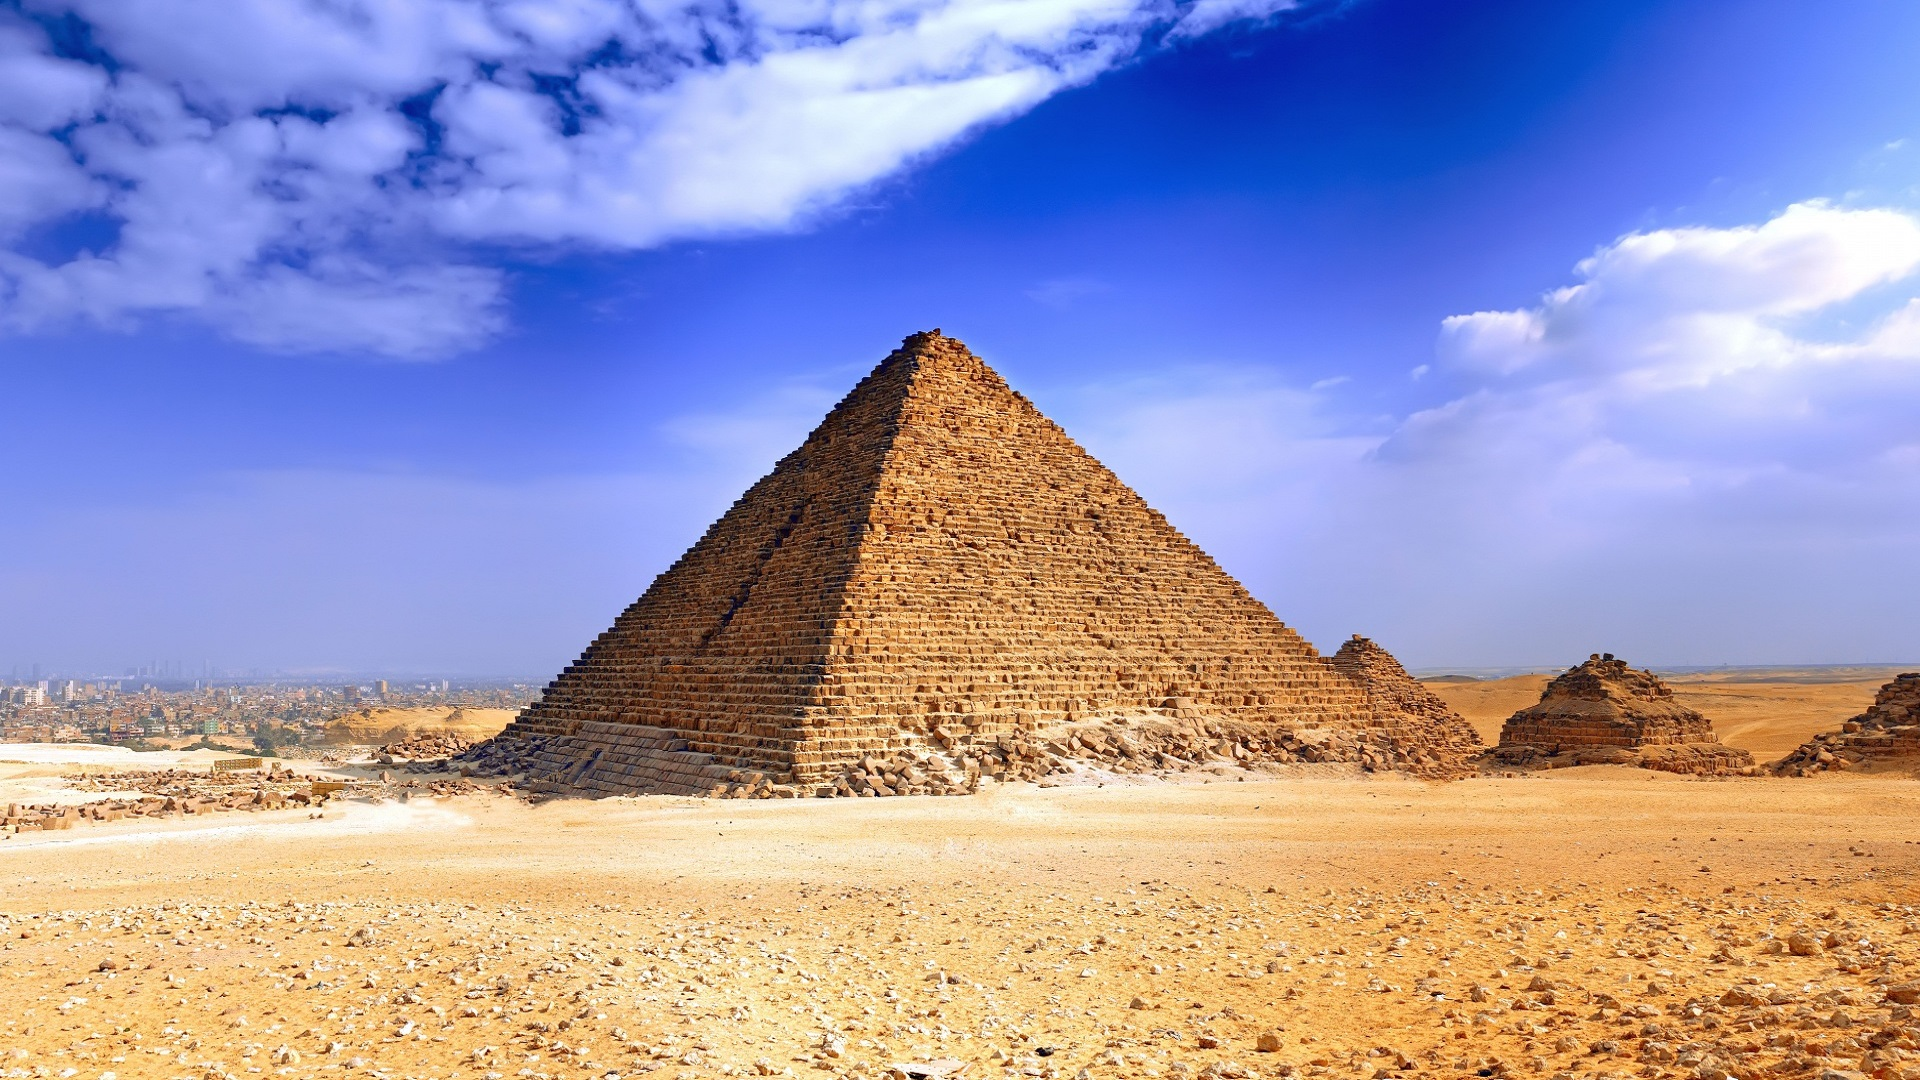 Egypt-Pyramid-Wallpaper.jpg